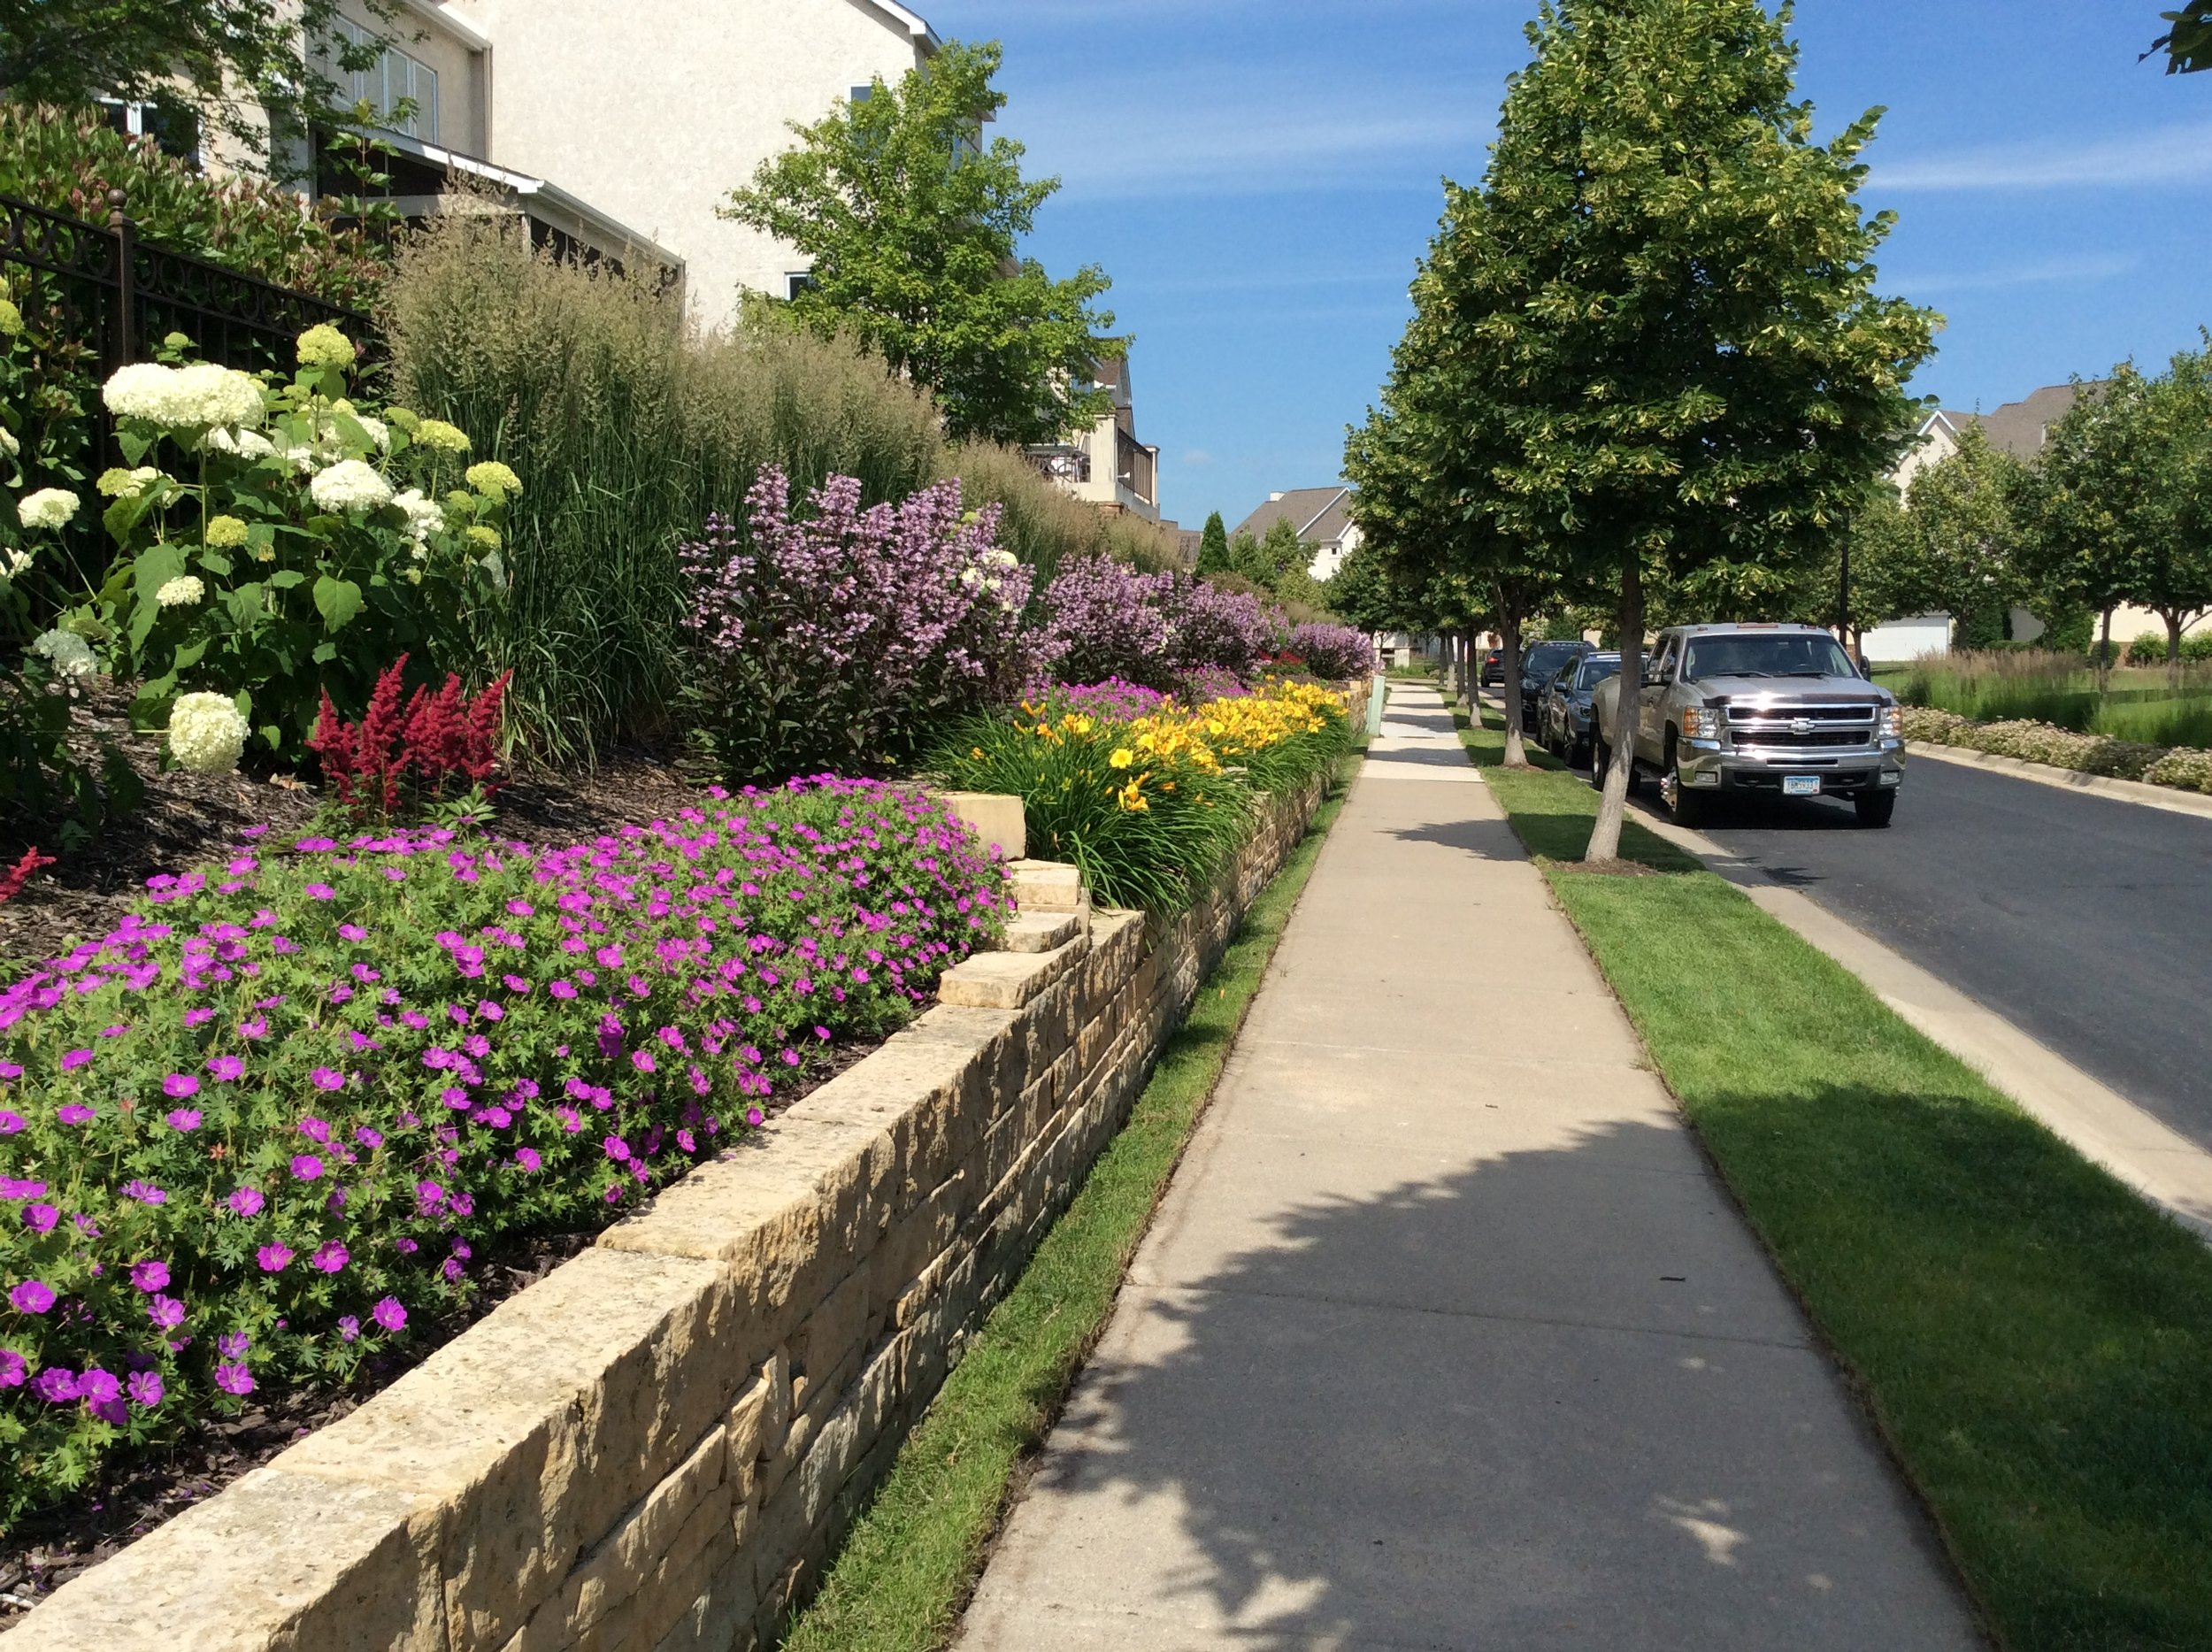 The Landings, Minneapolis MN. This multiyear renovation project required the Urban Land Care team to renovate the entire common area and redesign planted areas to remove junipers and replace them with perennial plants that included pollinator friendly plants, textures and color.